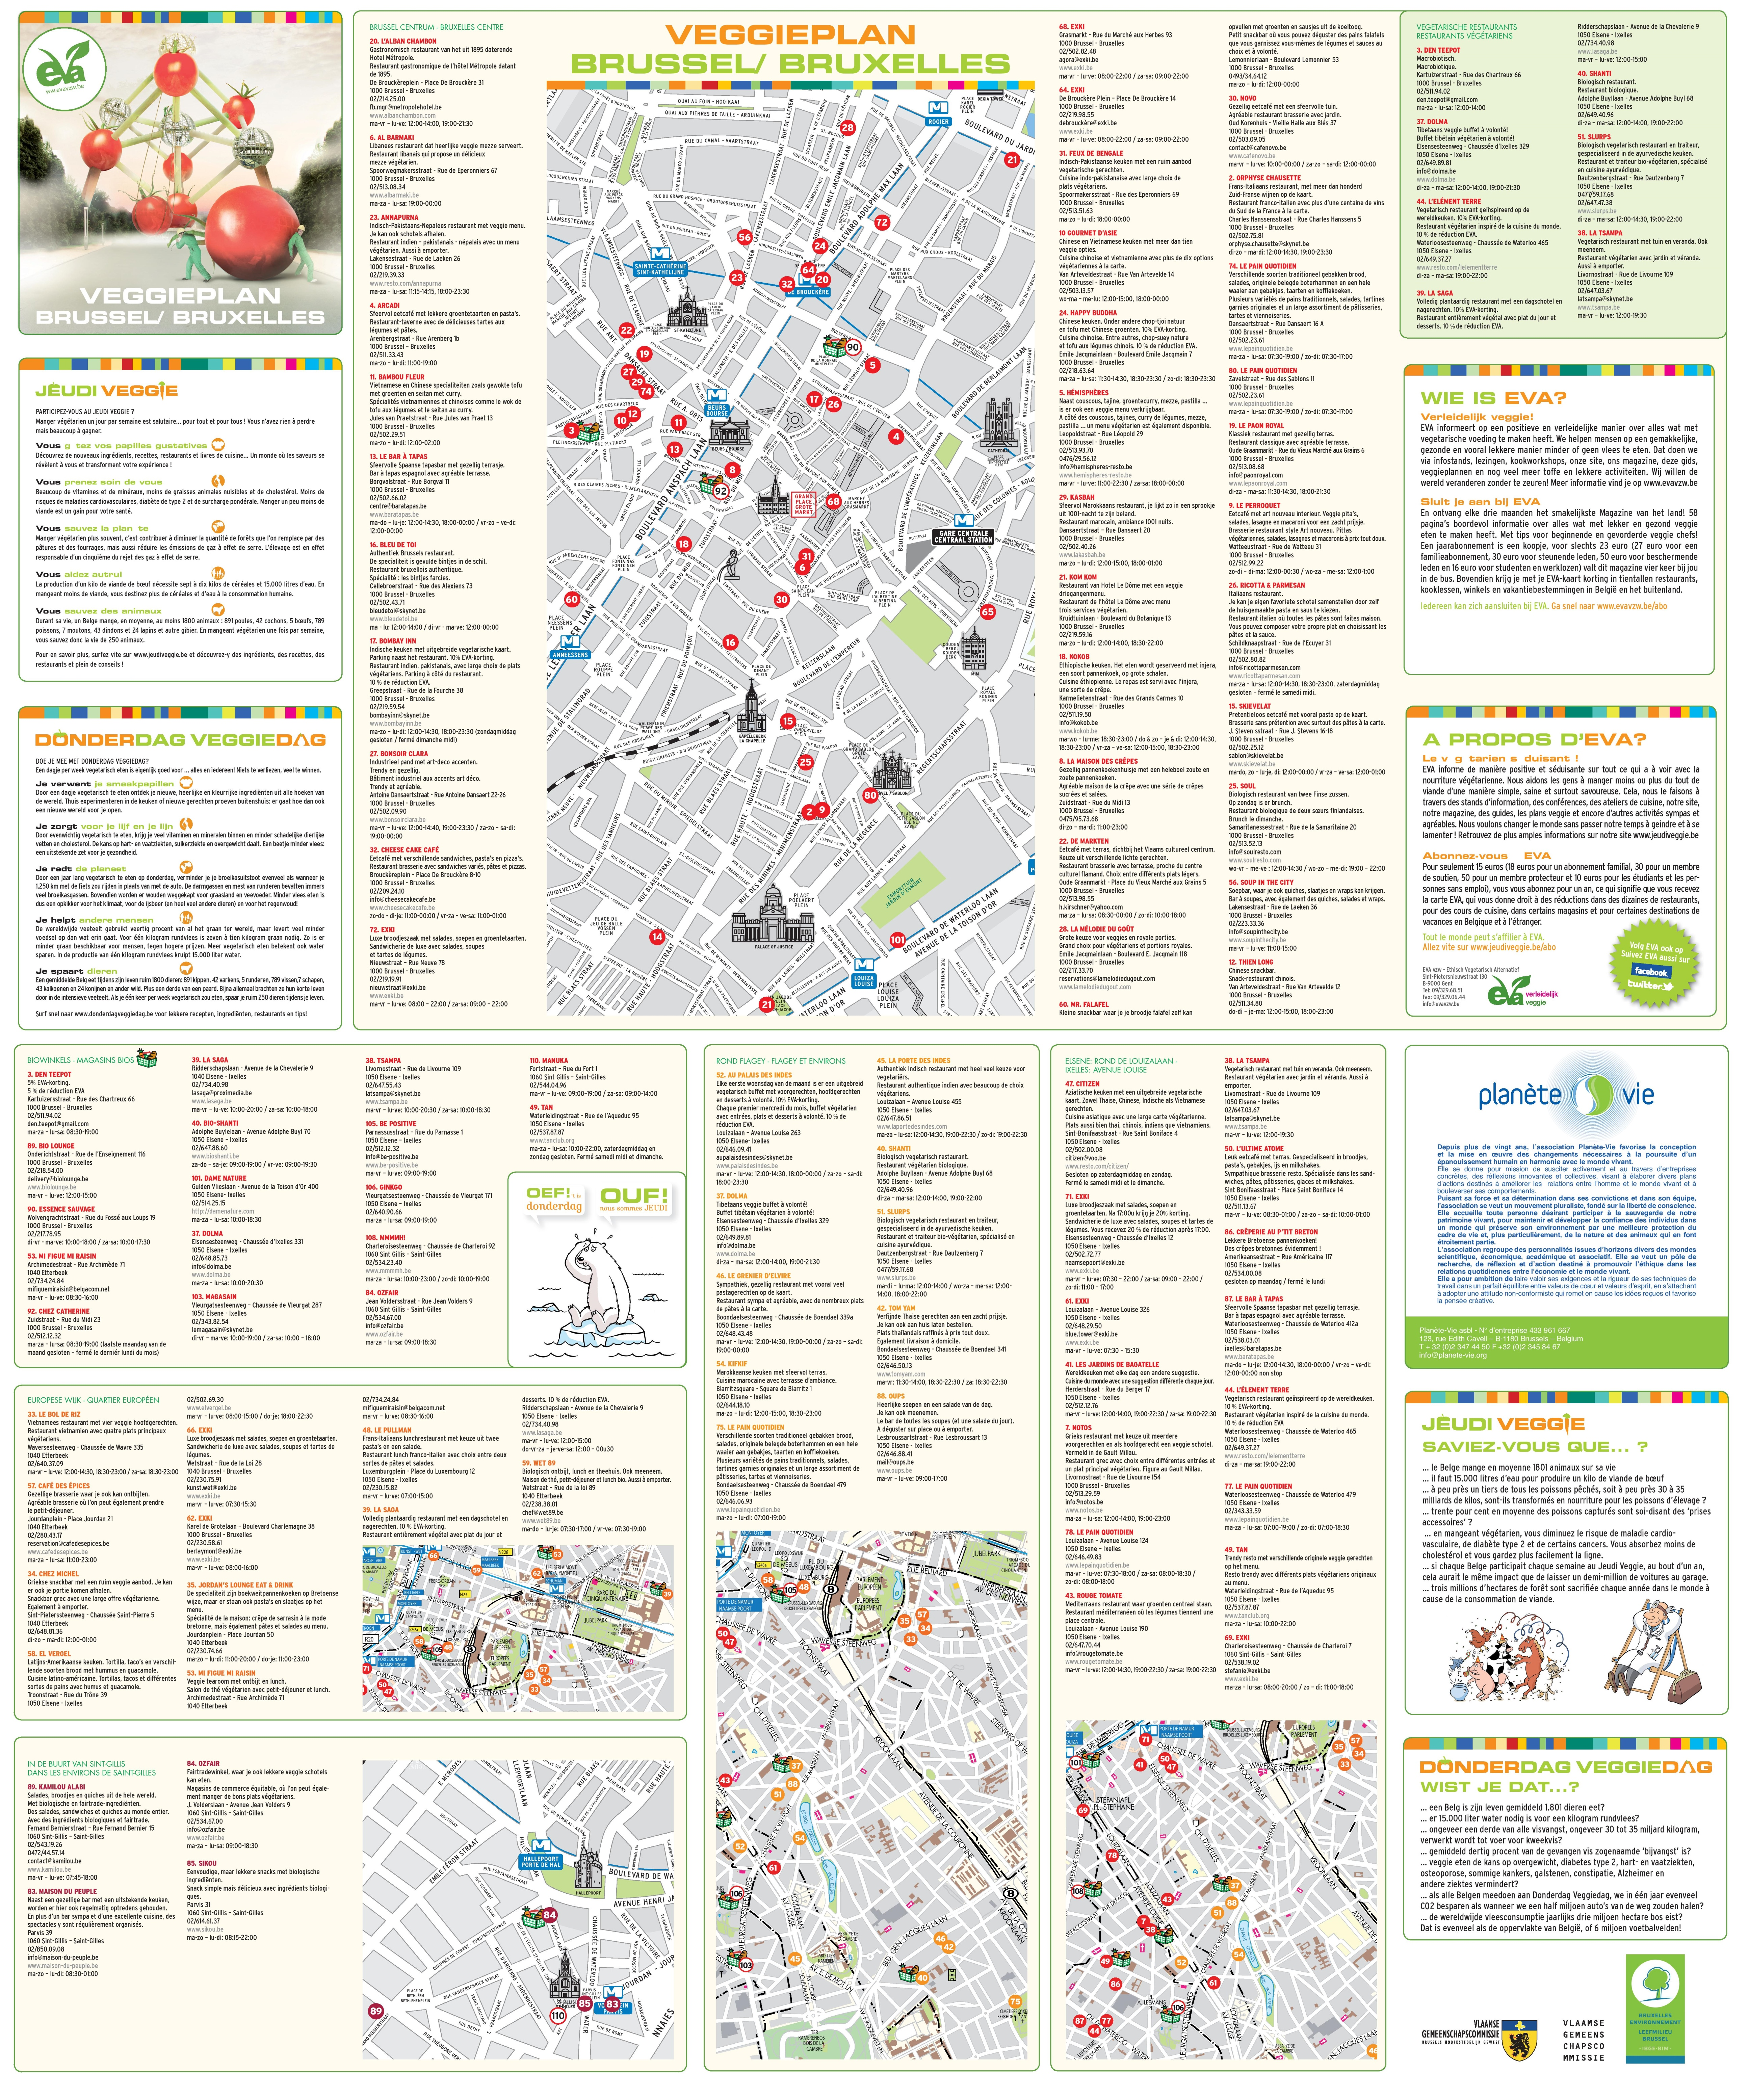 Brussels tourist attractions map – Brussels Tourist Attractions Map